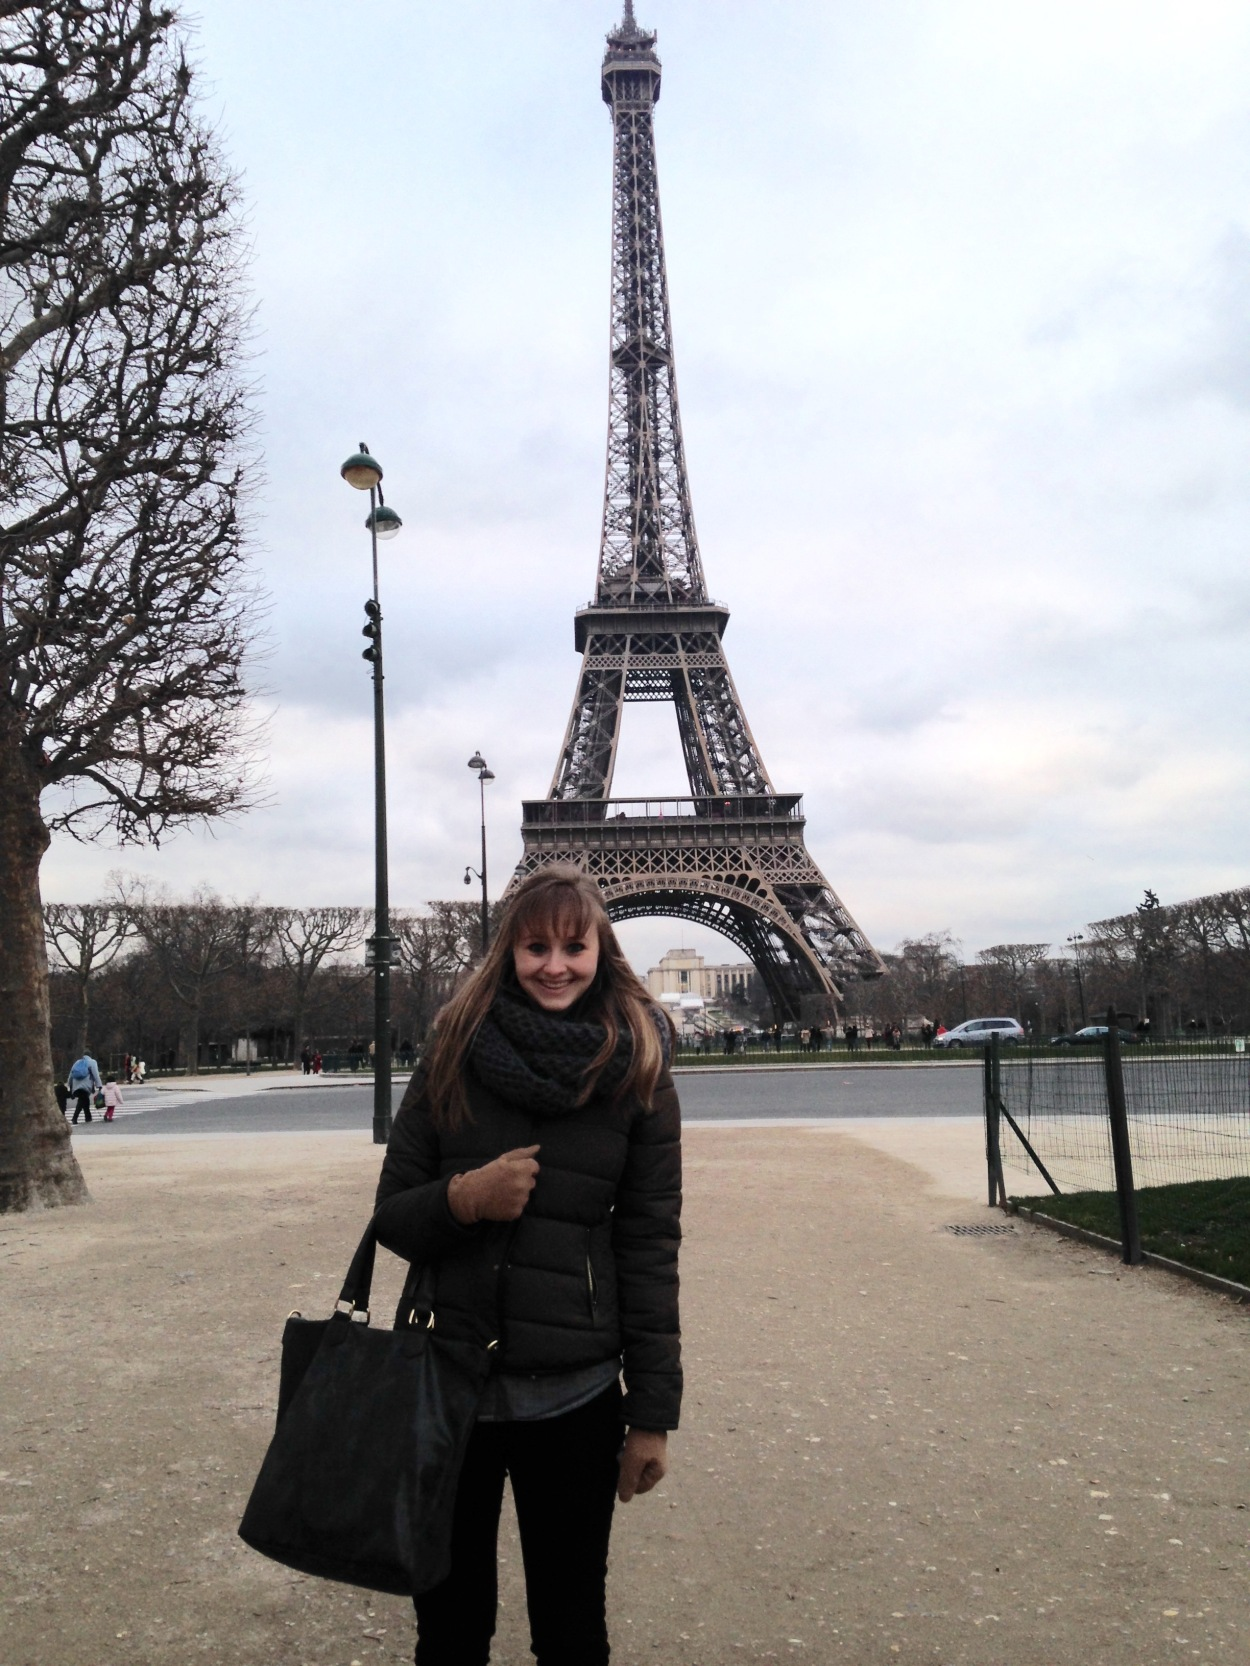 Eiffel Tower, Paris, France - Panetta - Photo 1